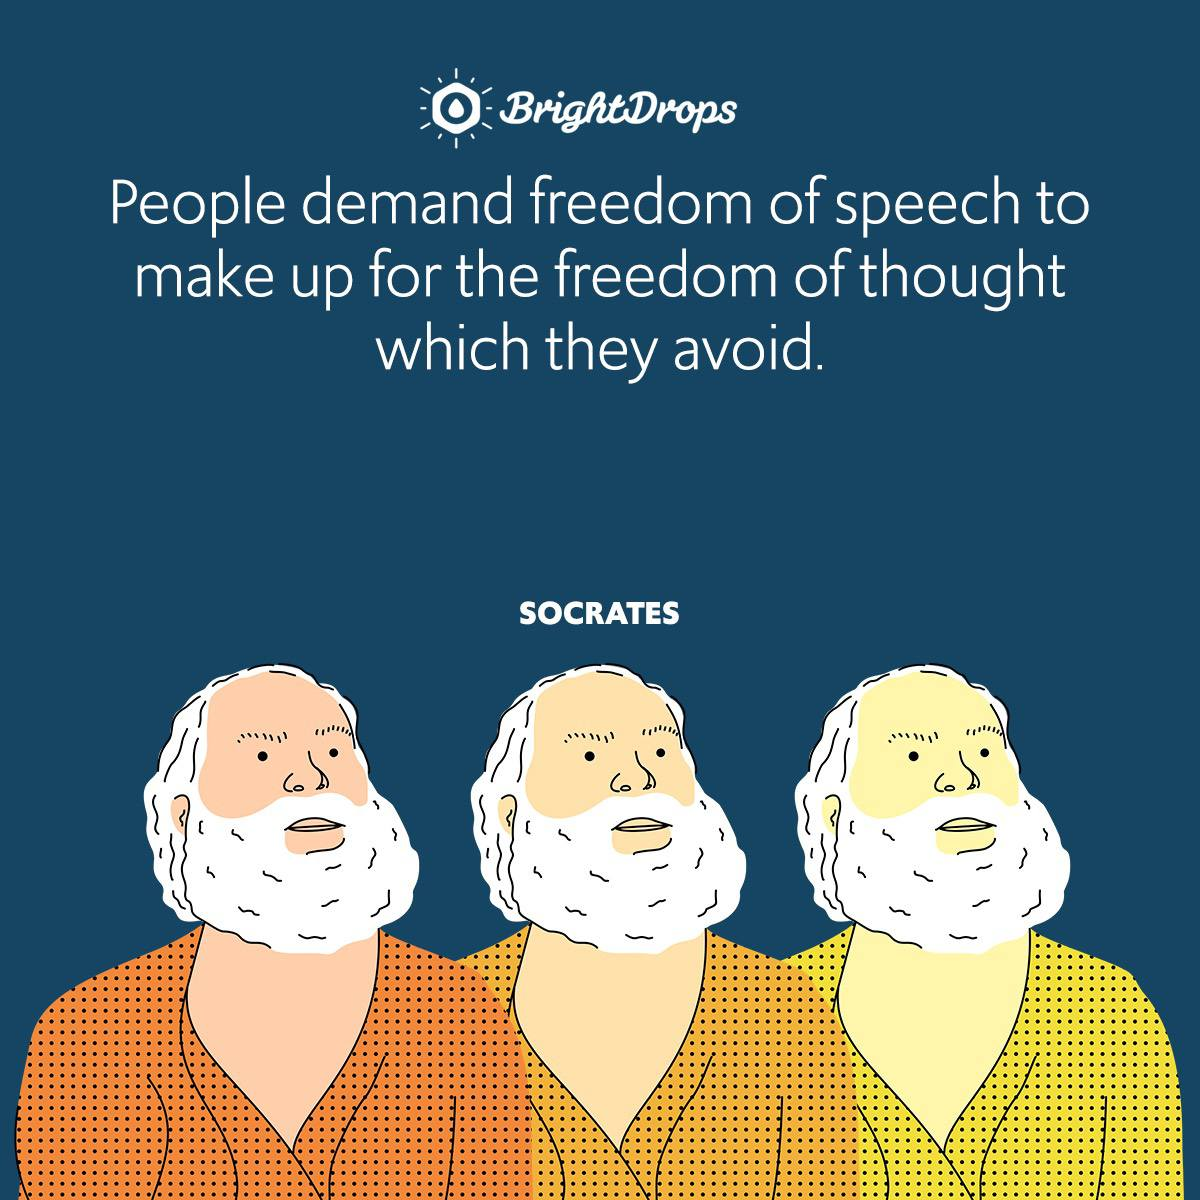 People demand freedom of speech to make up for the freedom of thought which they avoid.